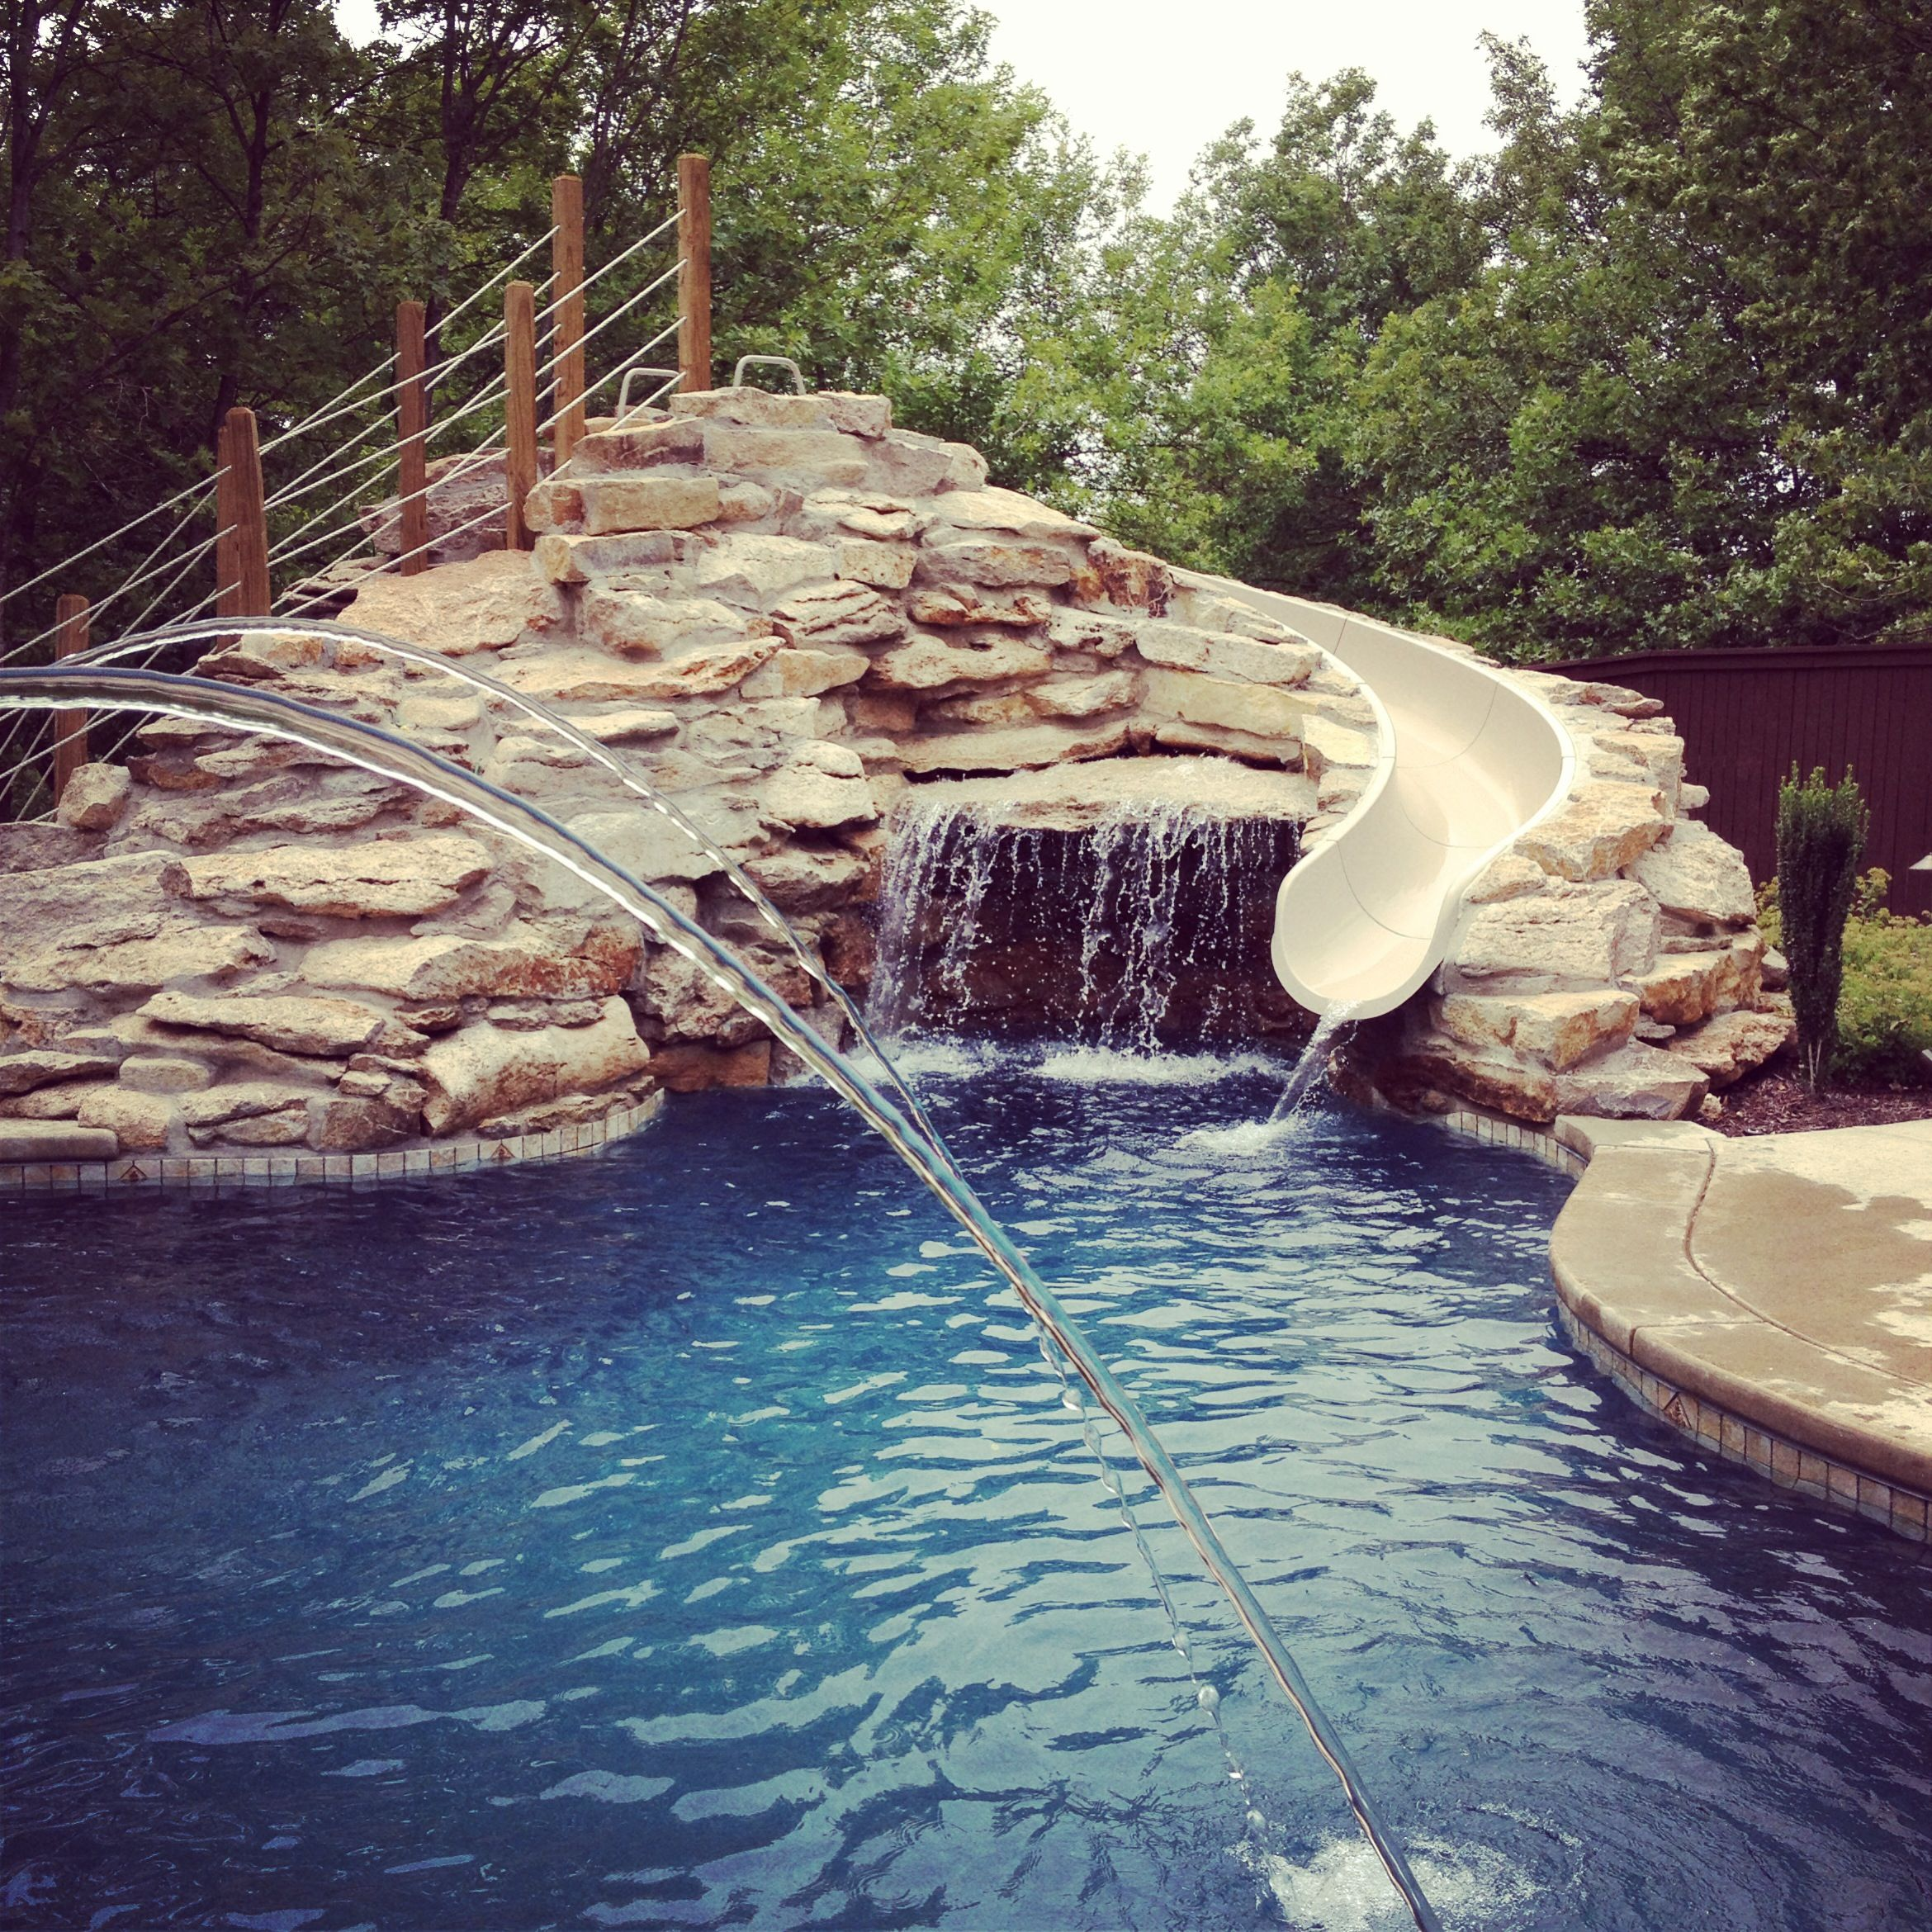 Luxury House Pool With Waterfall And Slides: Swimming Pools/Hot Tubs/Water Falls